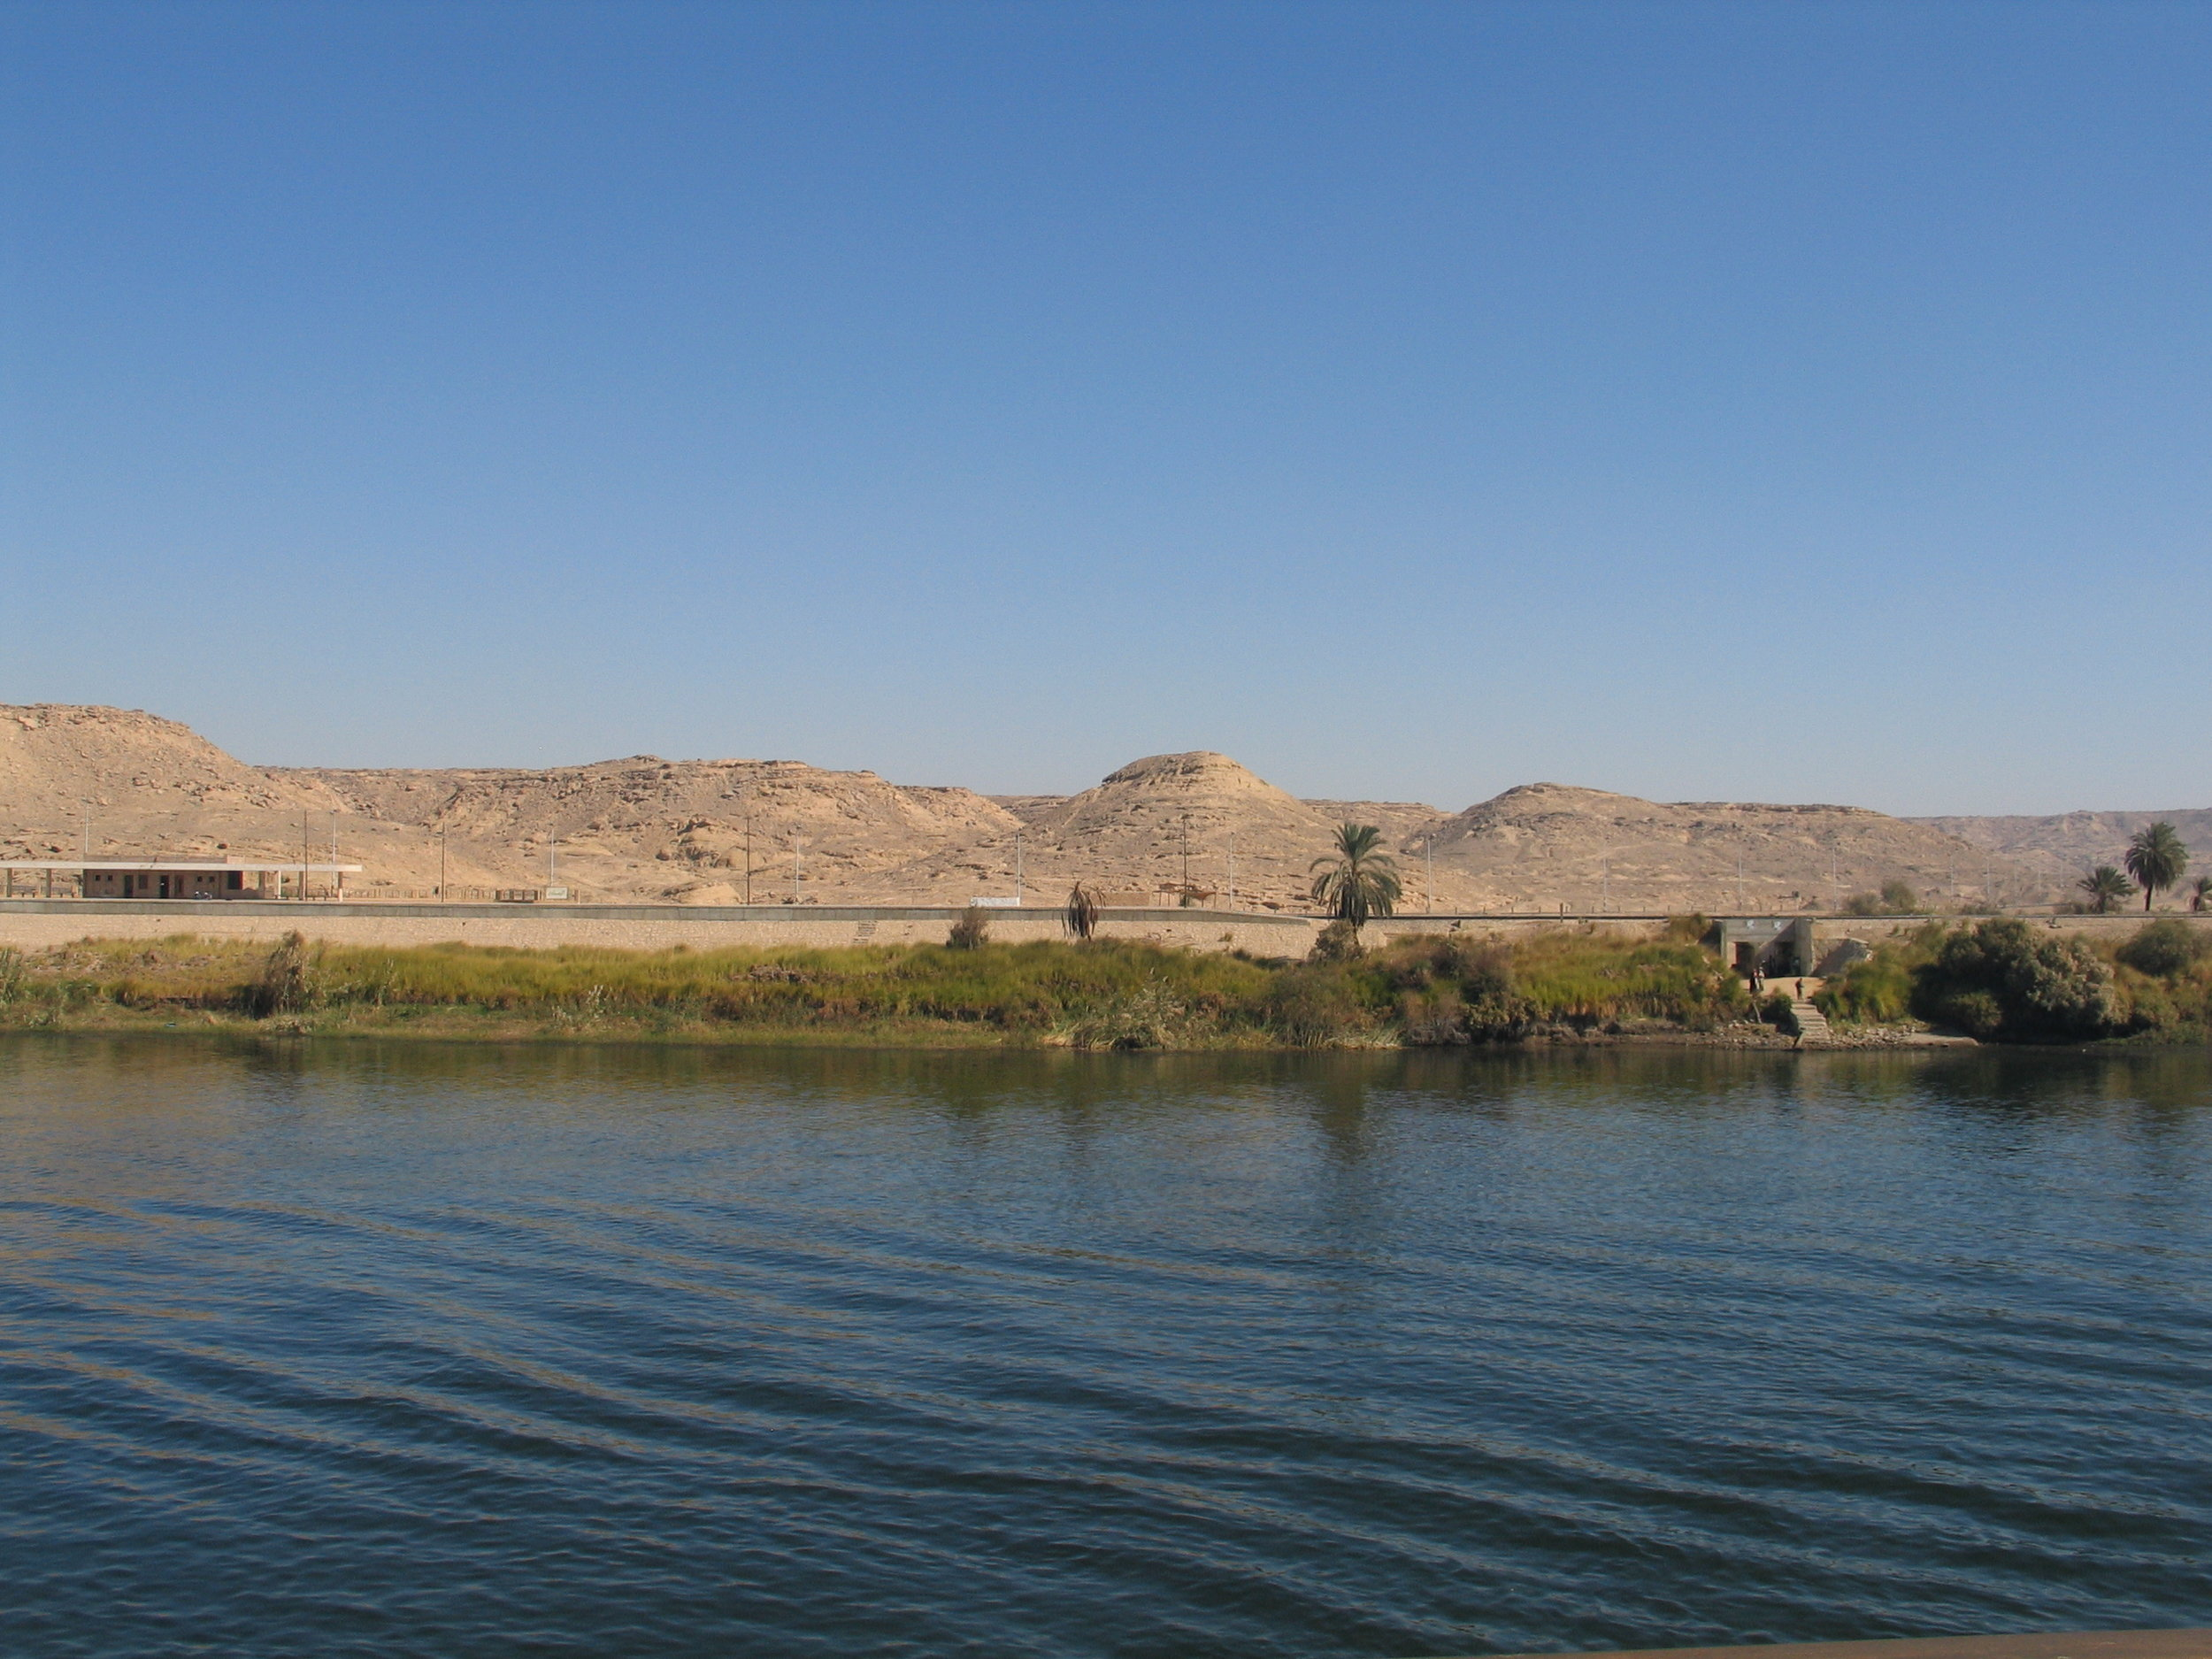 Another example of demarcation between the green land and the desert as seen from the Nile.